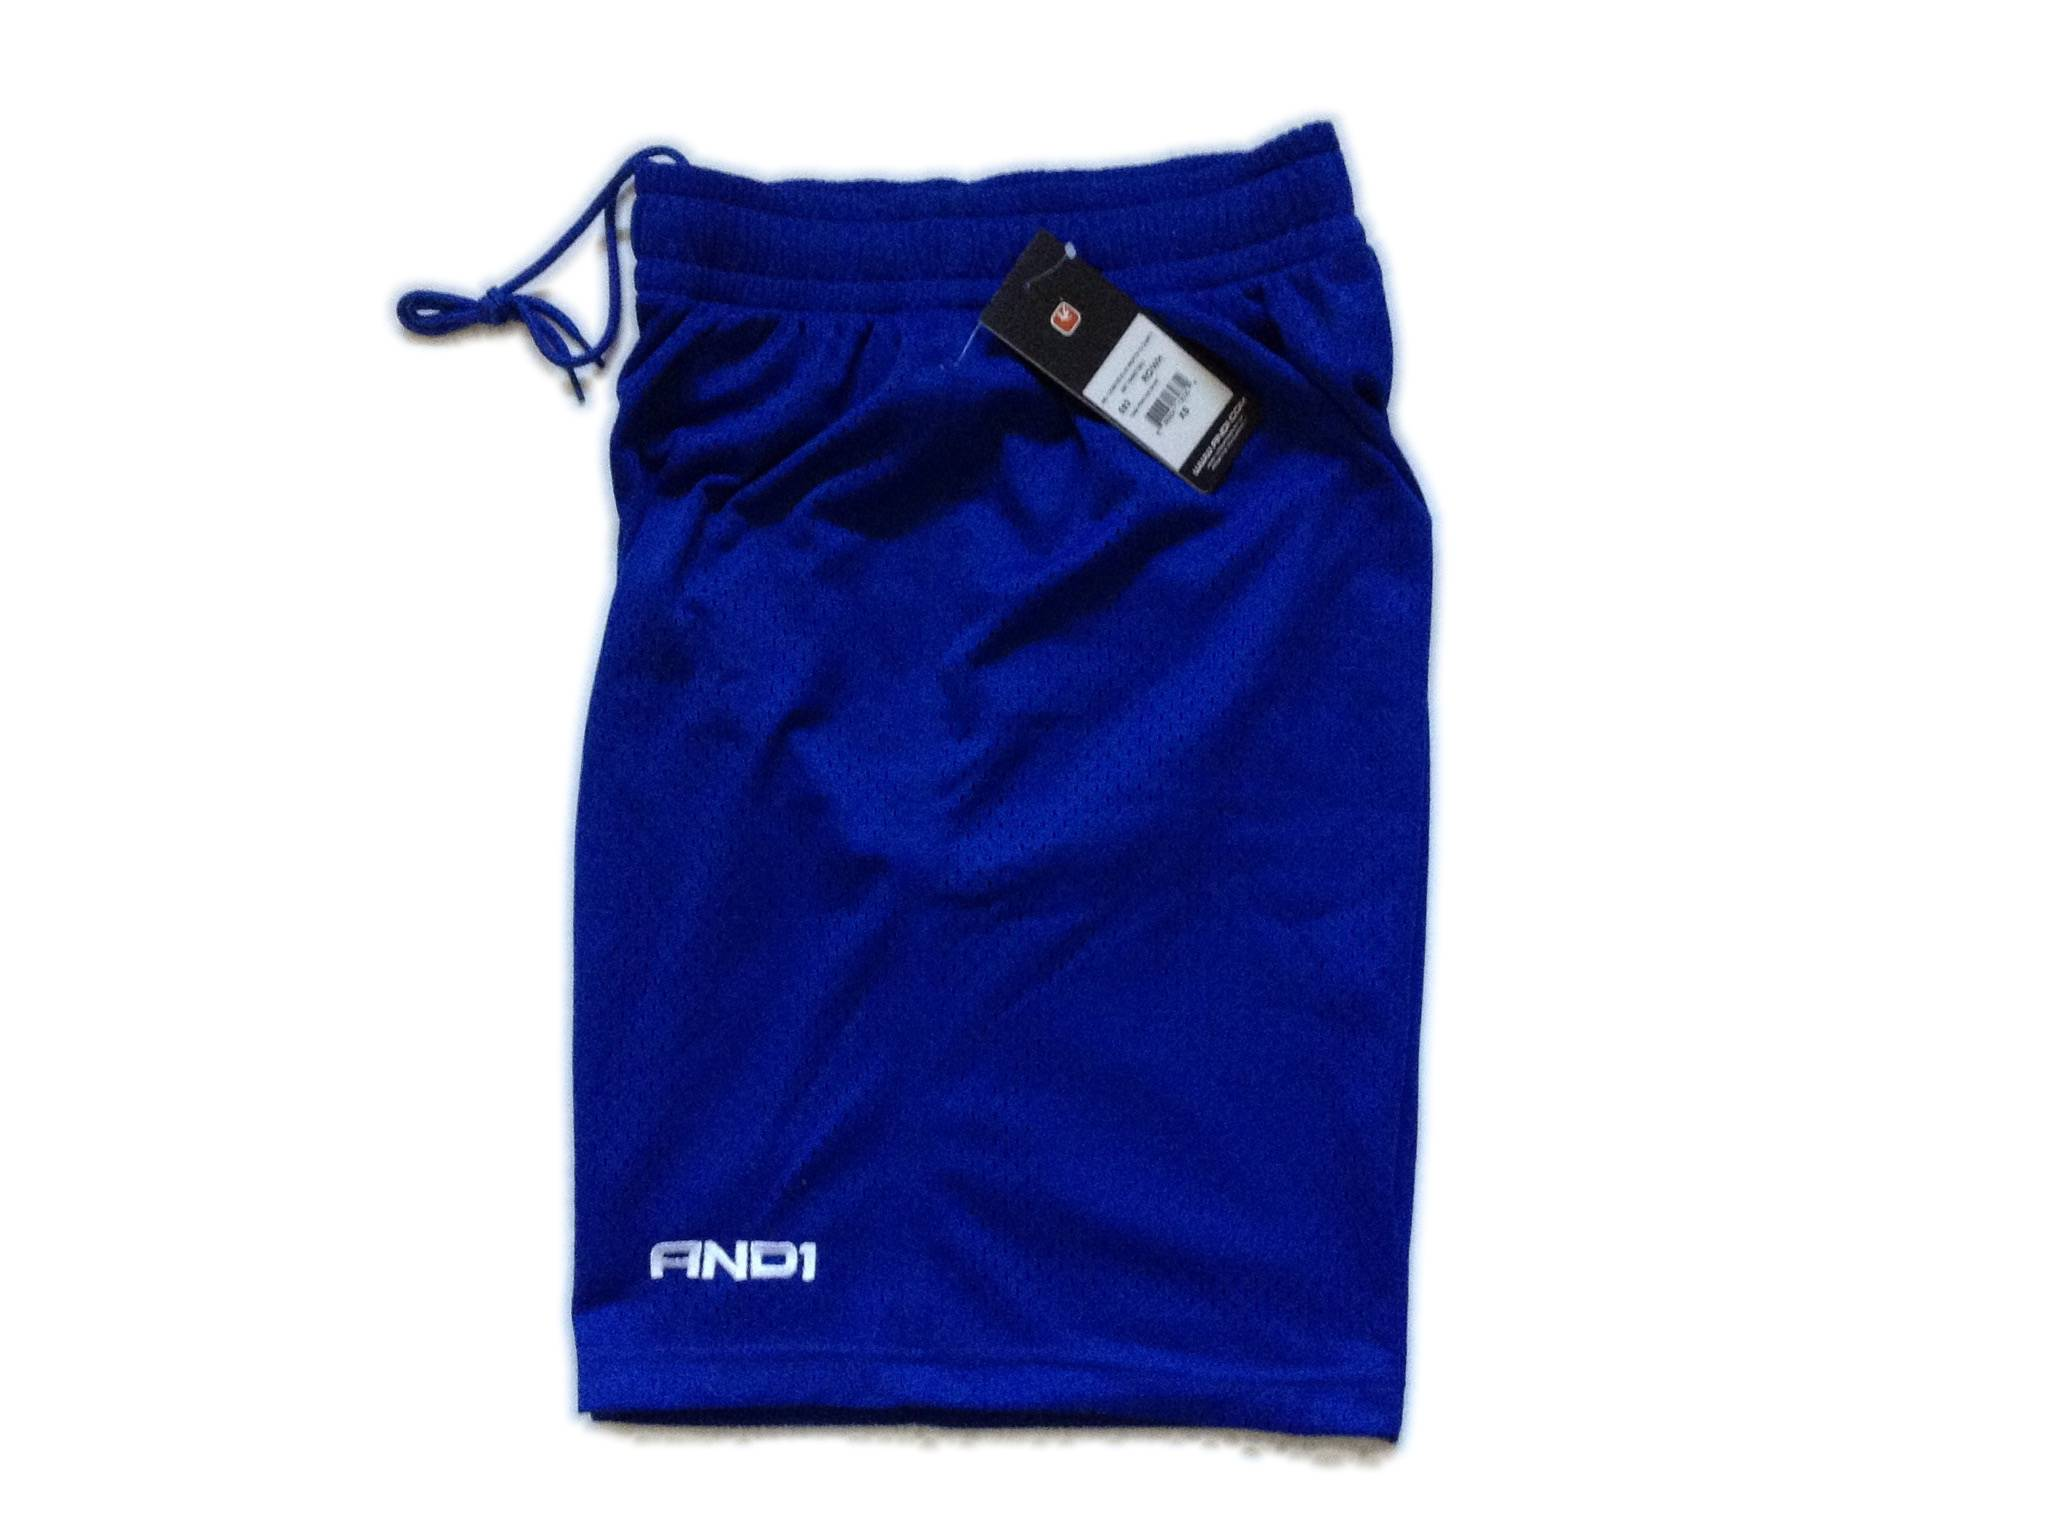 AND1 Basketball Practice Shorts - Royal